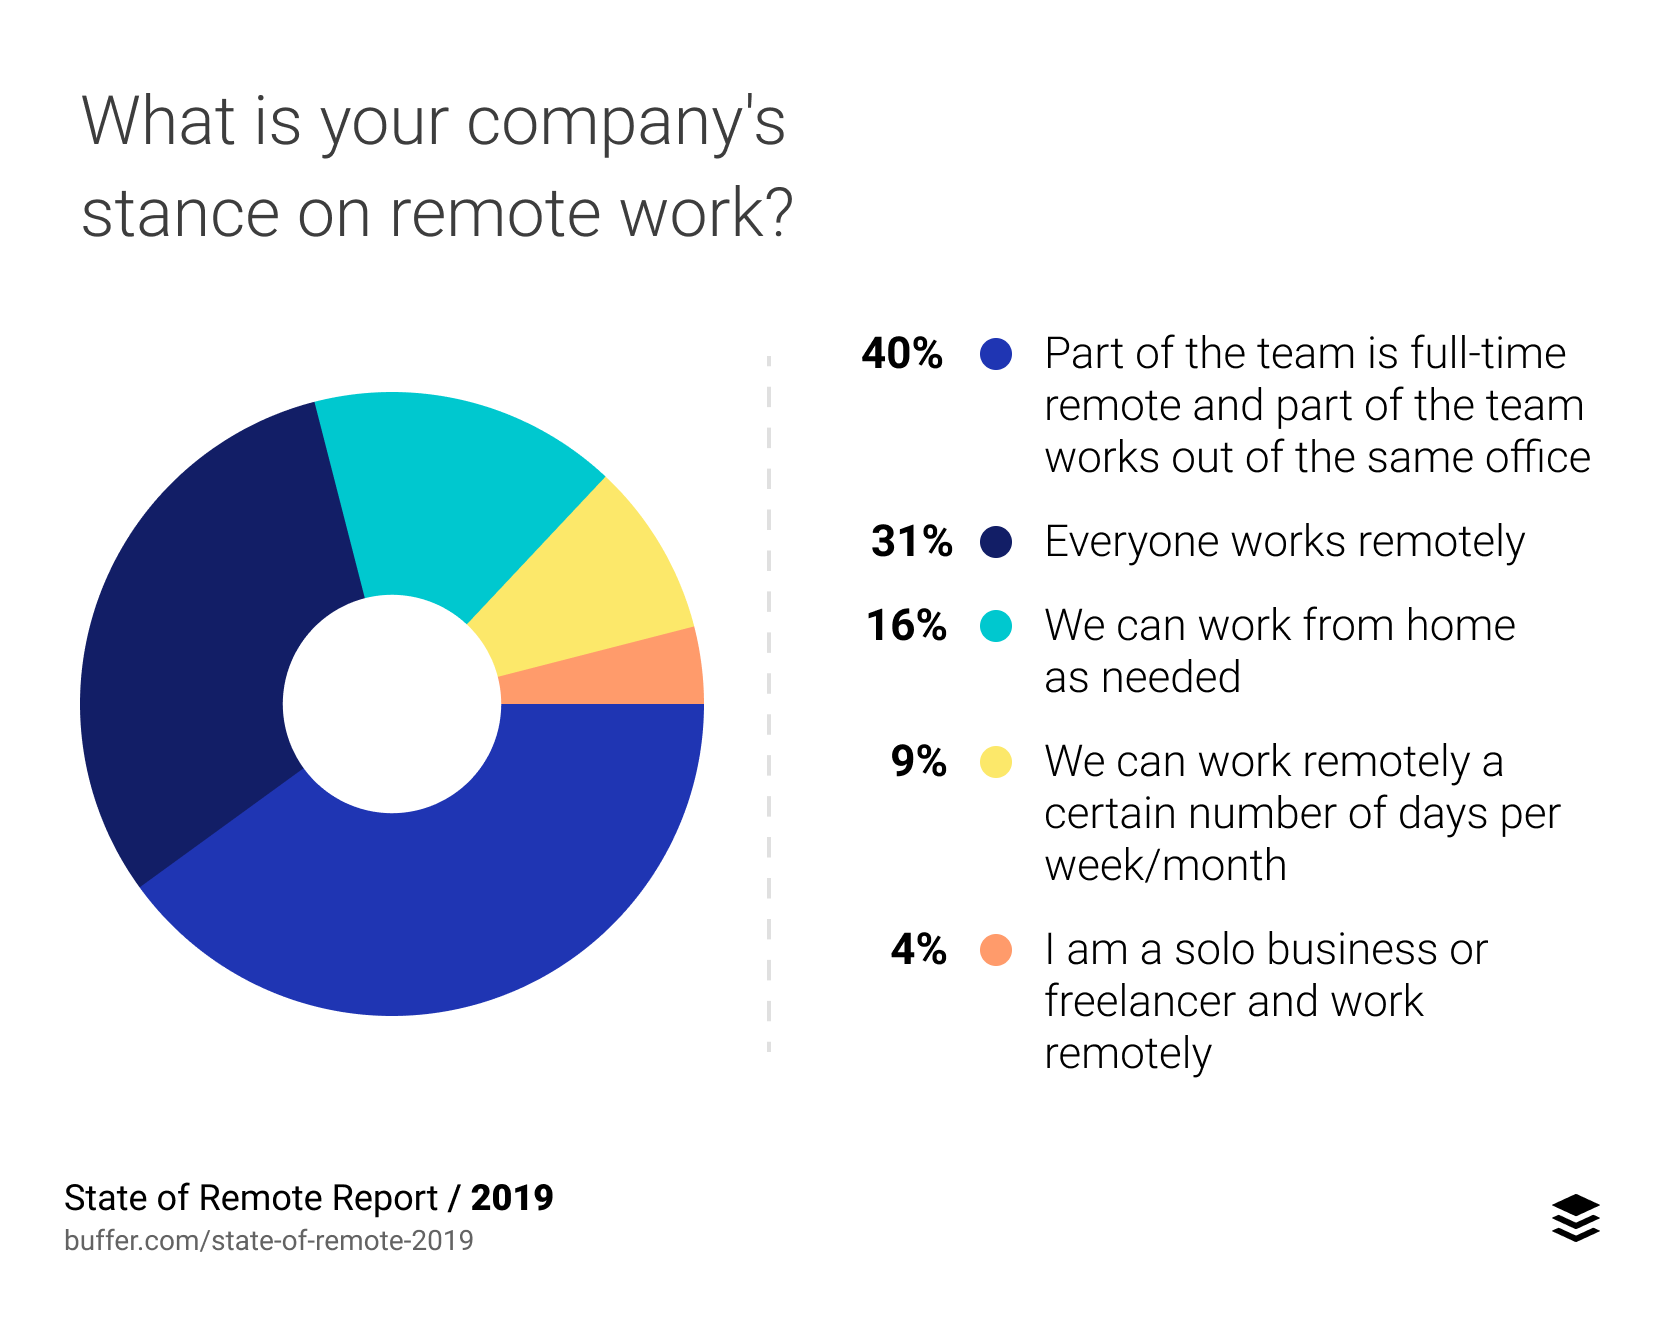 company view on remote work